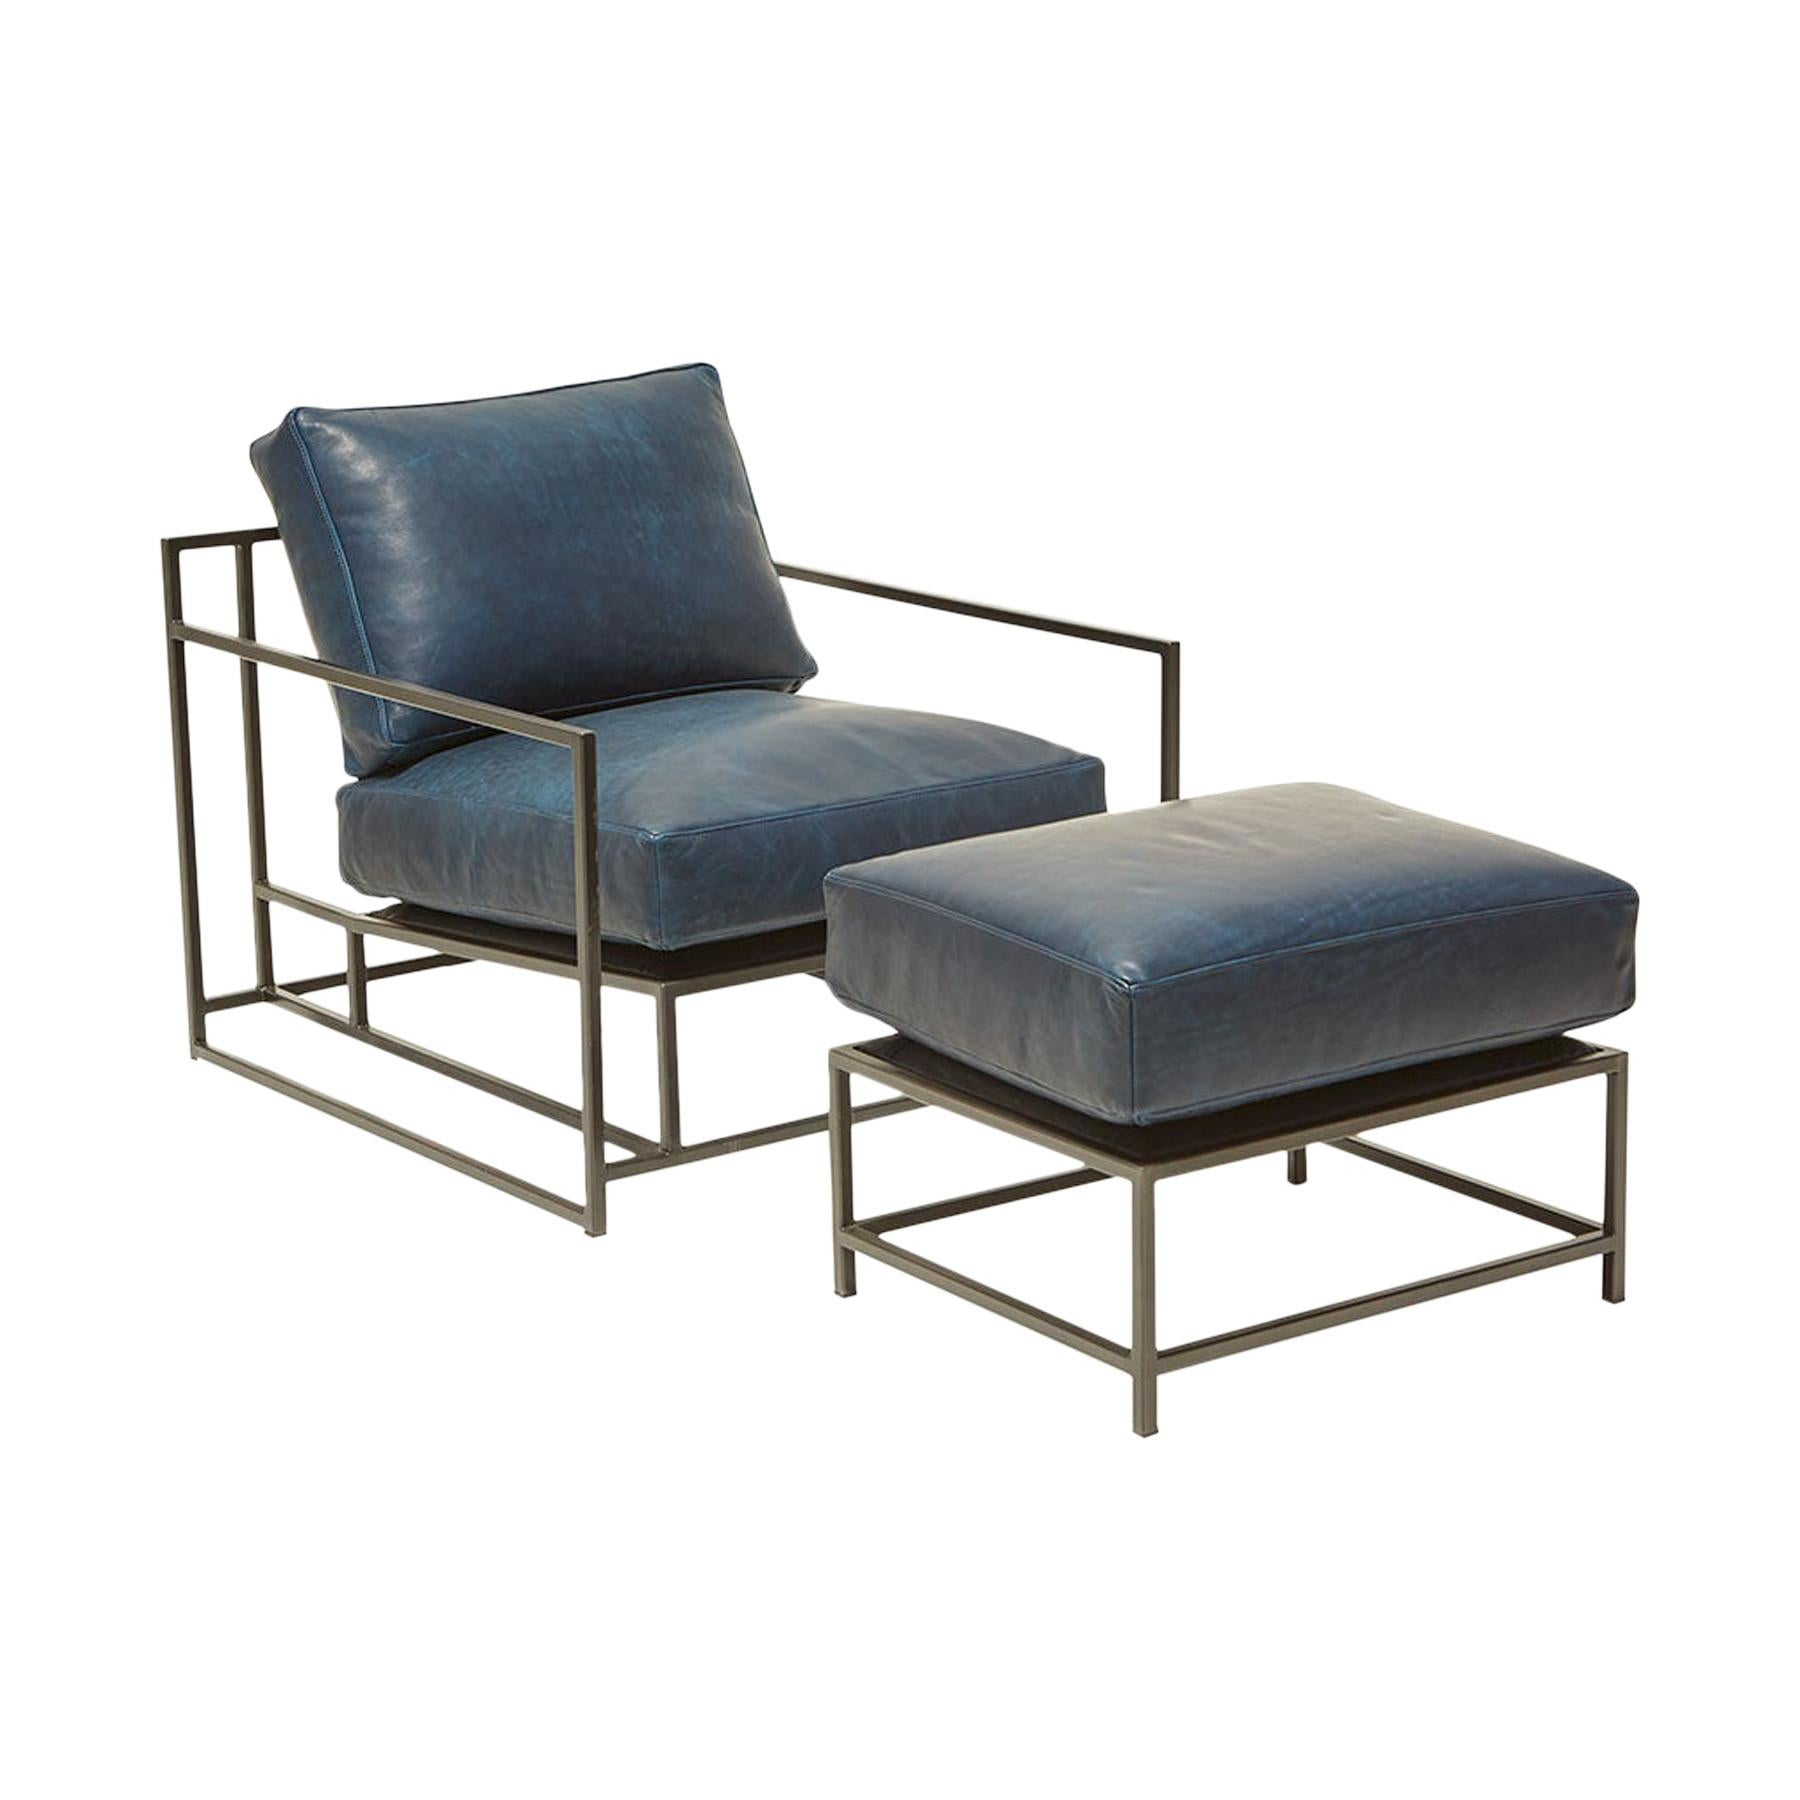 Brentwood Navy Leather and Blackened Steel Armchair and Ottoman Set